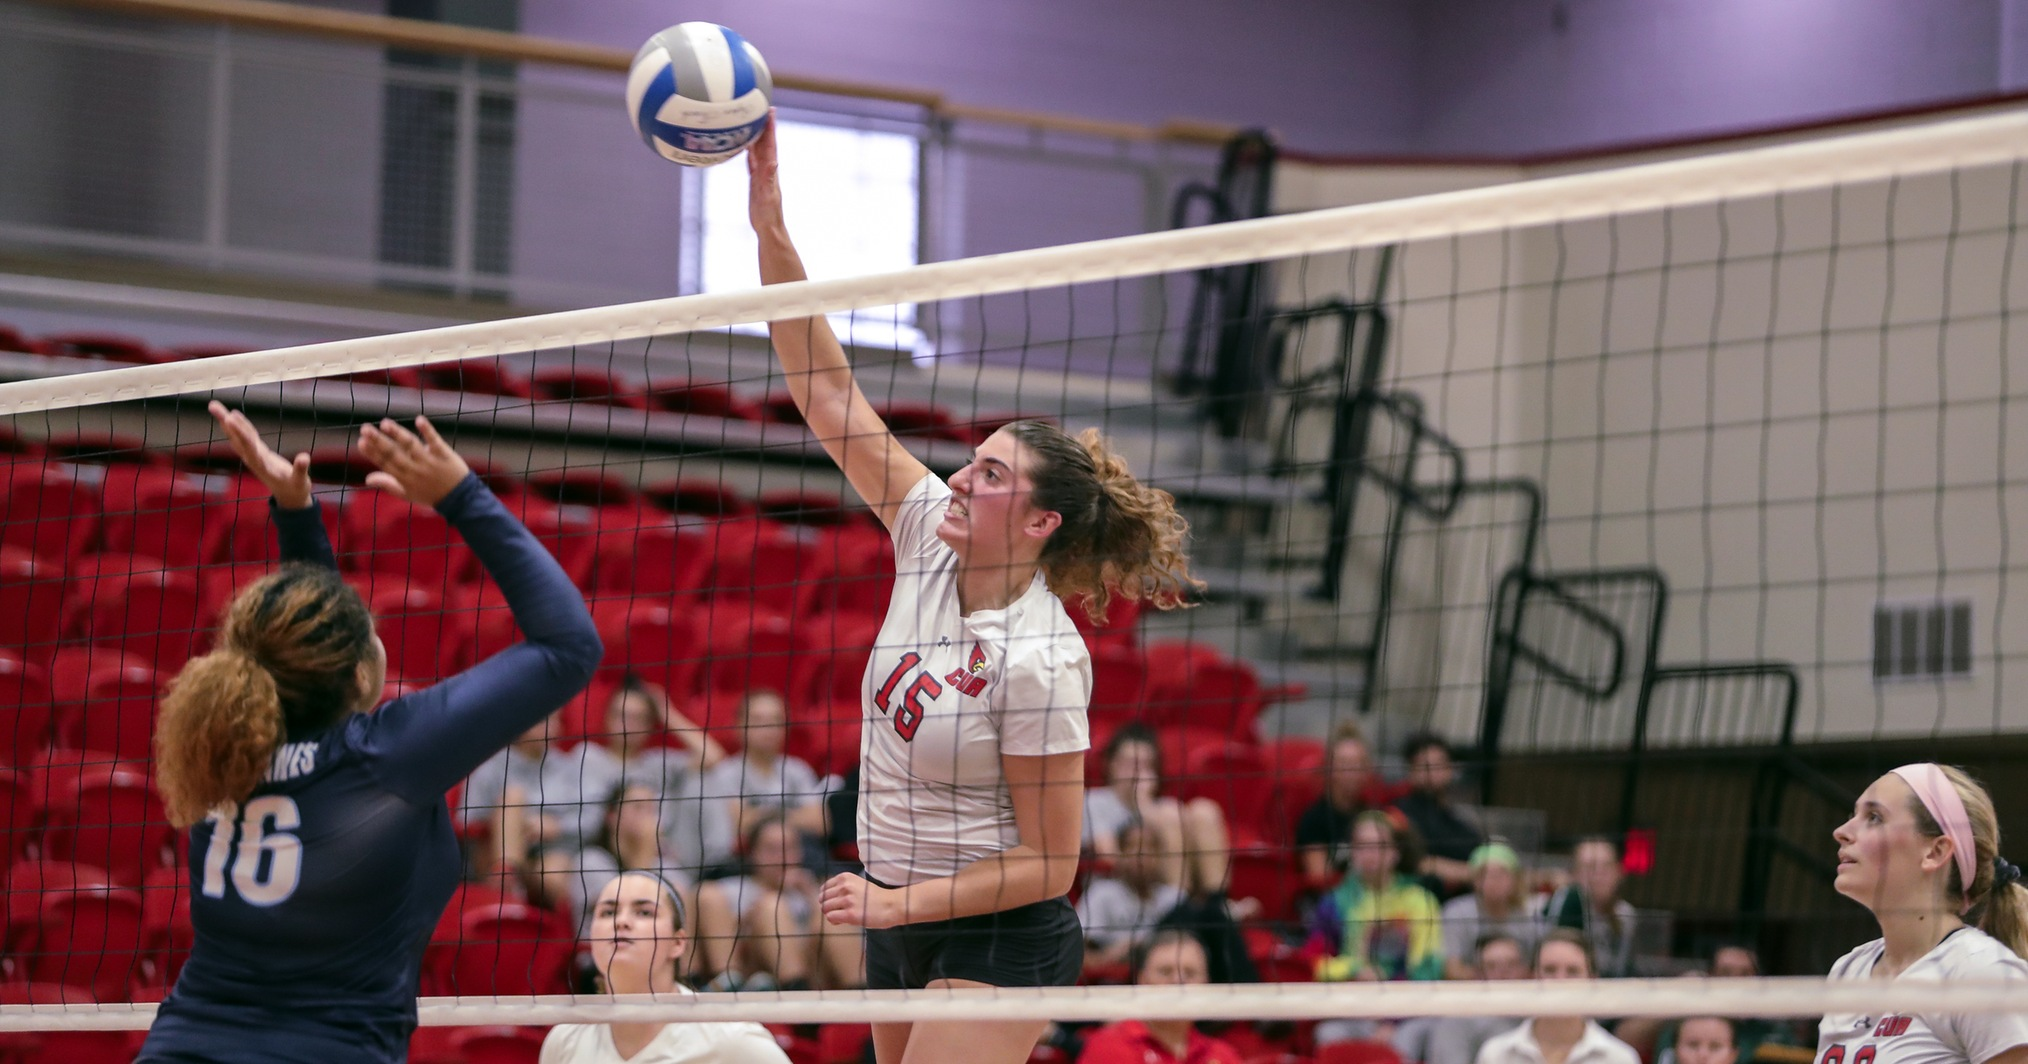 Cardinals Fall to Messiah in Five at Knights Invitational